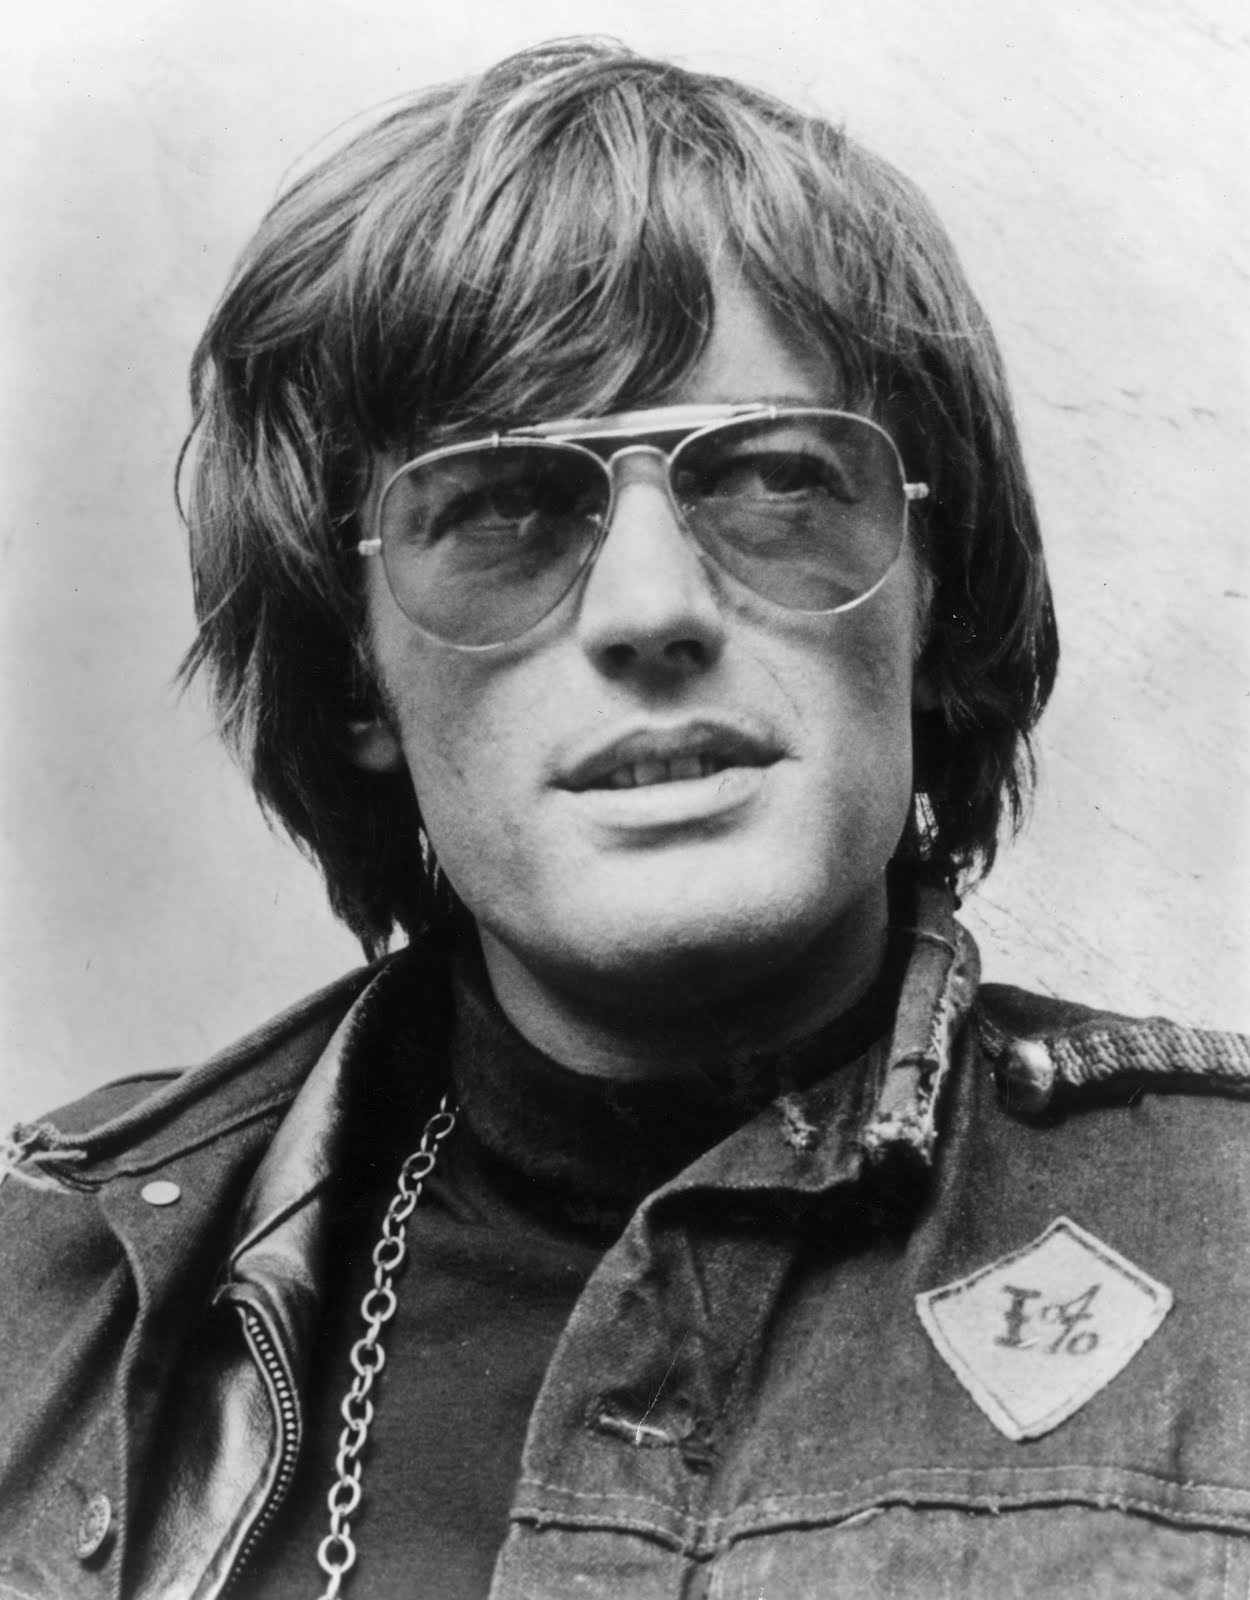 Happy birthday to Peter Fonda